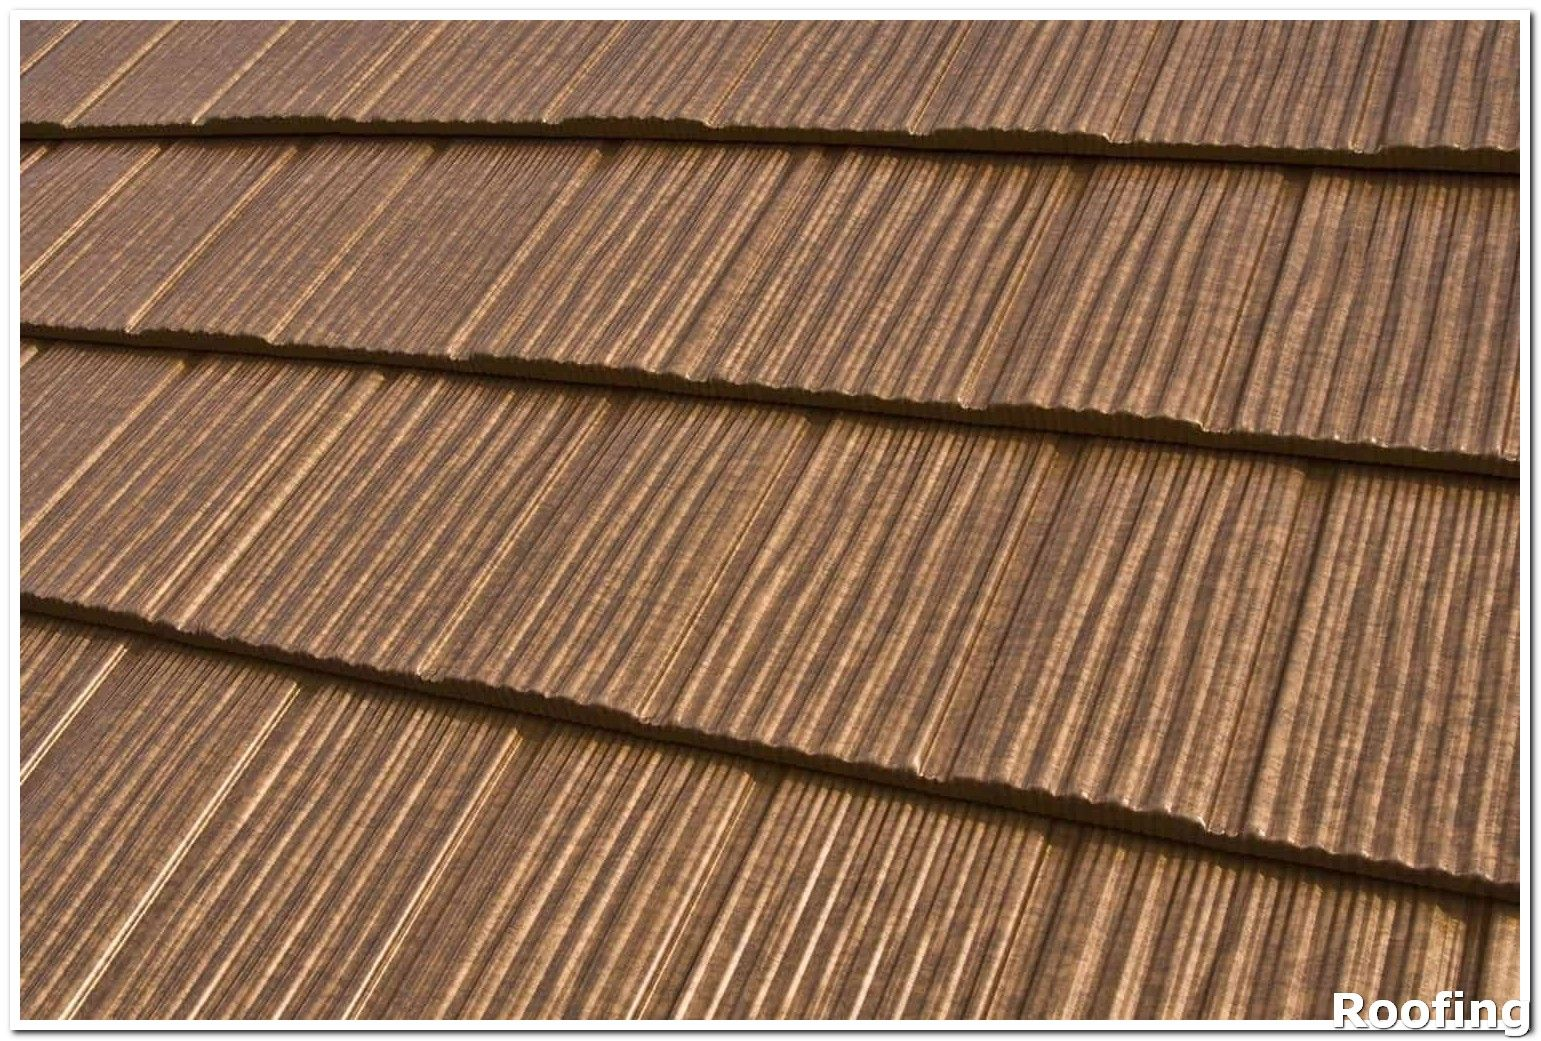 Roofing Tips Carefully Check The Written Estimate That You Are Given By A Professional Roofer Make Sure To Do Metal Roofing Systems Cool Roof Metal Roof